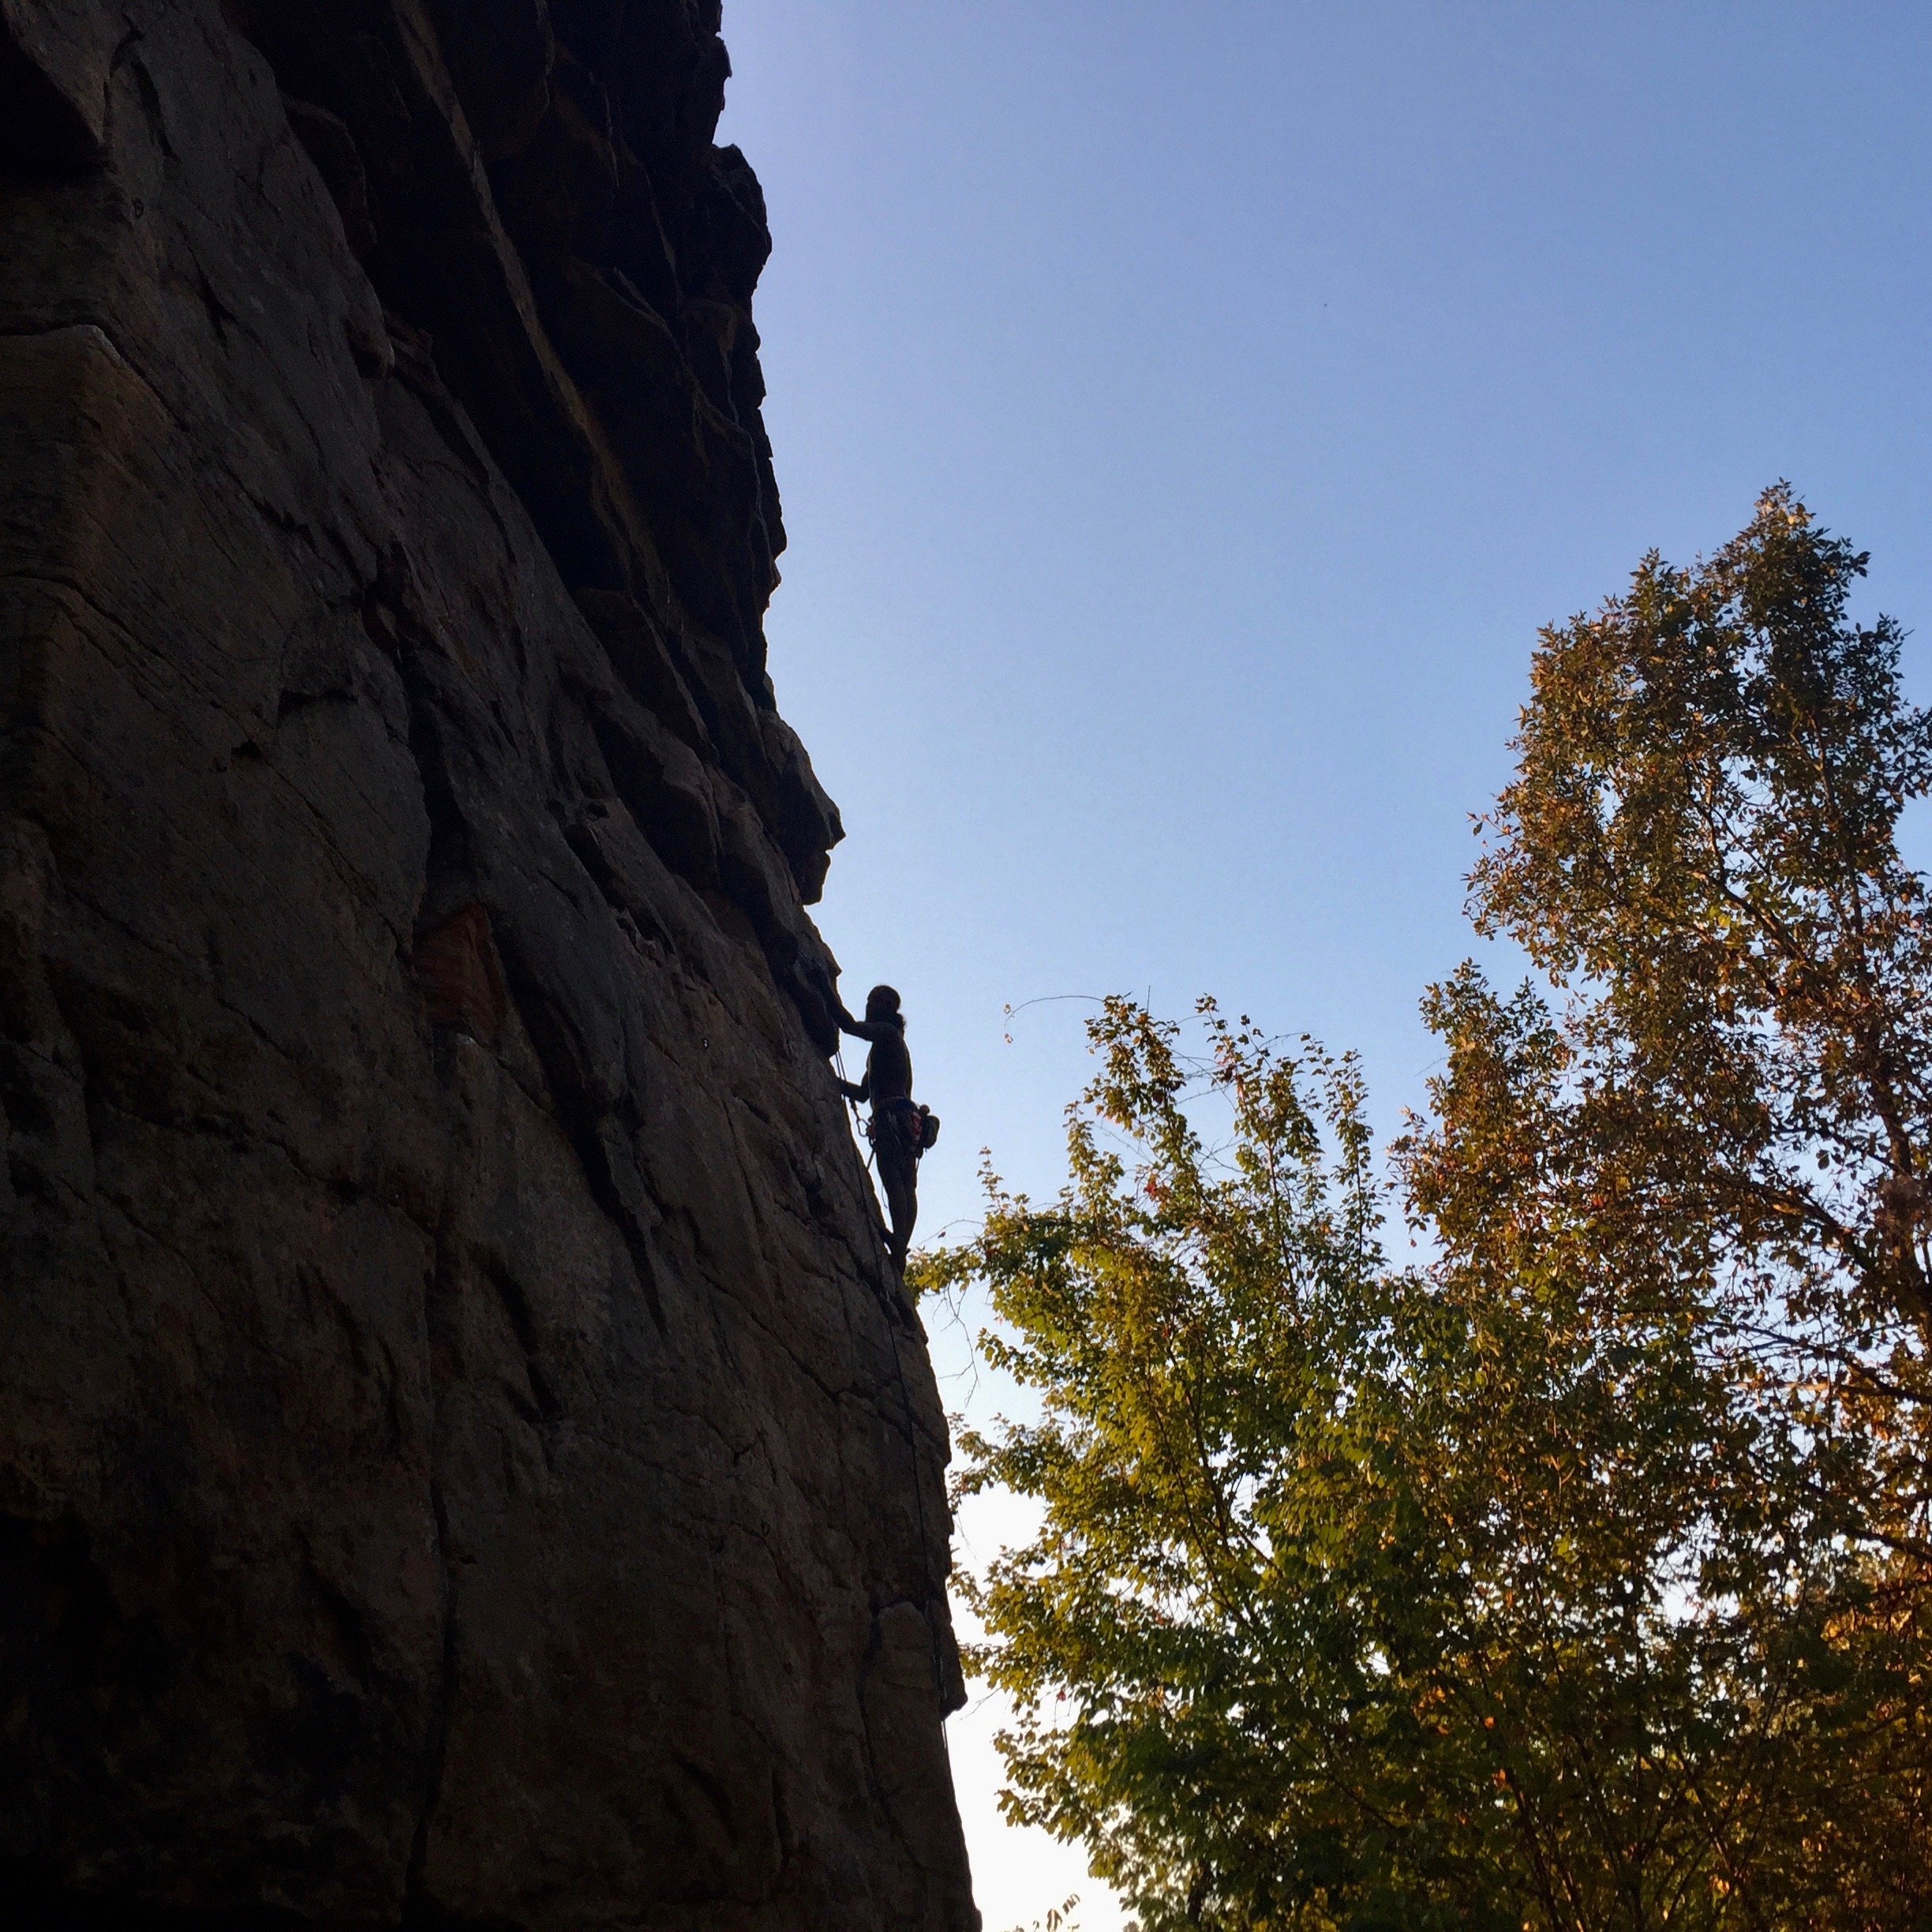 Another climber on a 5.8 arete, one of the last routes we ticked